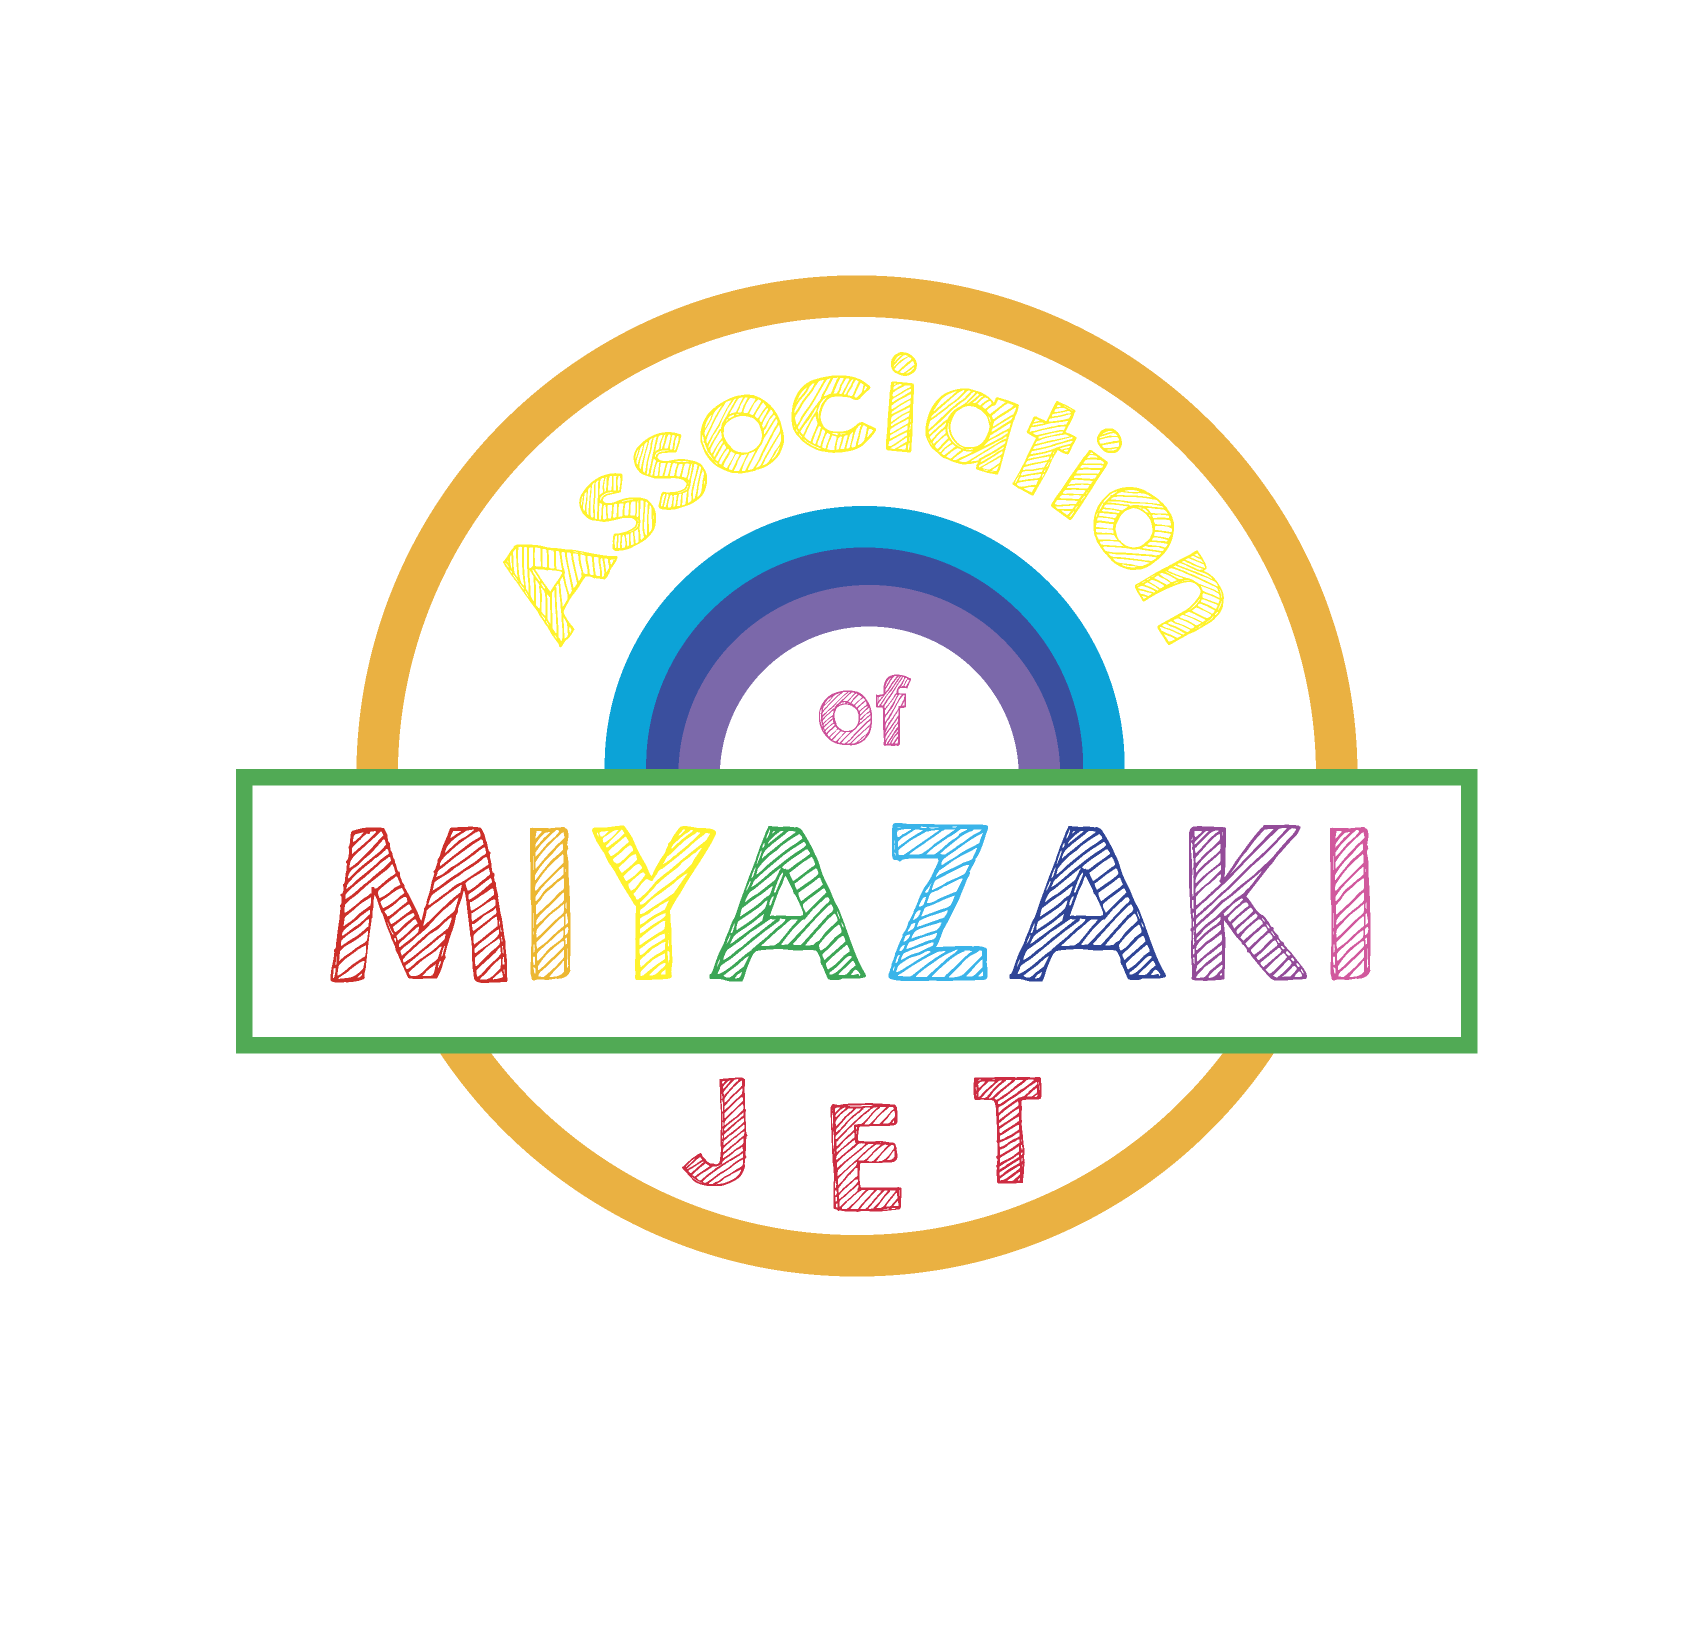 And The Logo Contest Winner Is